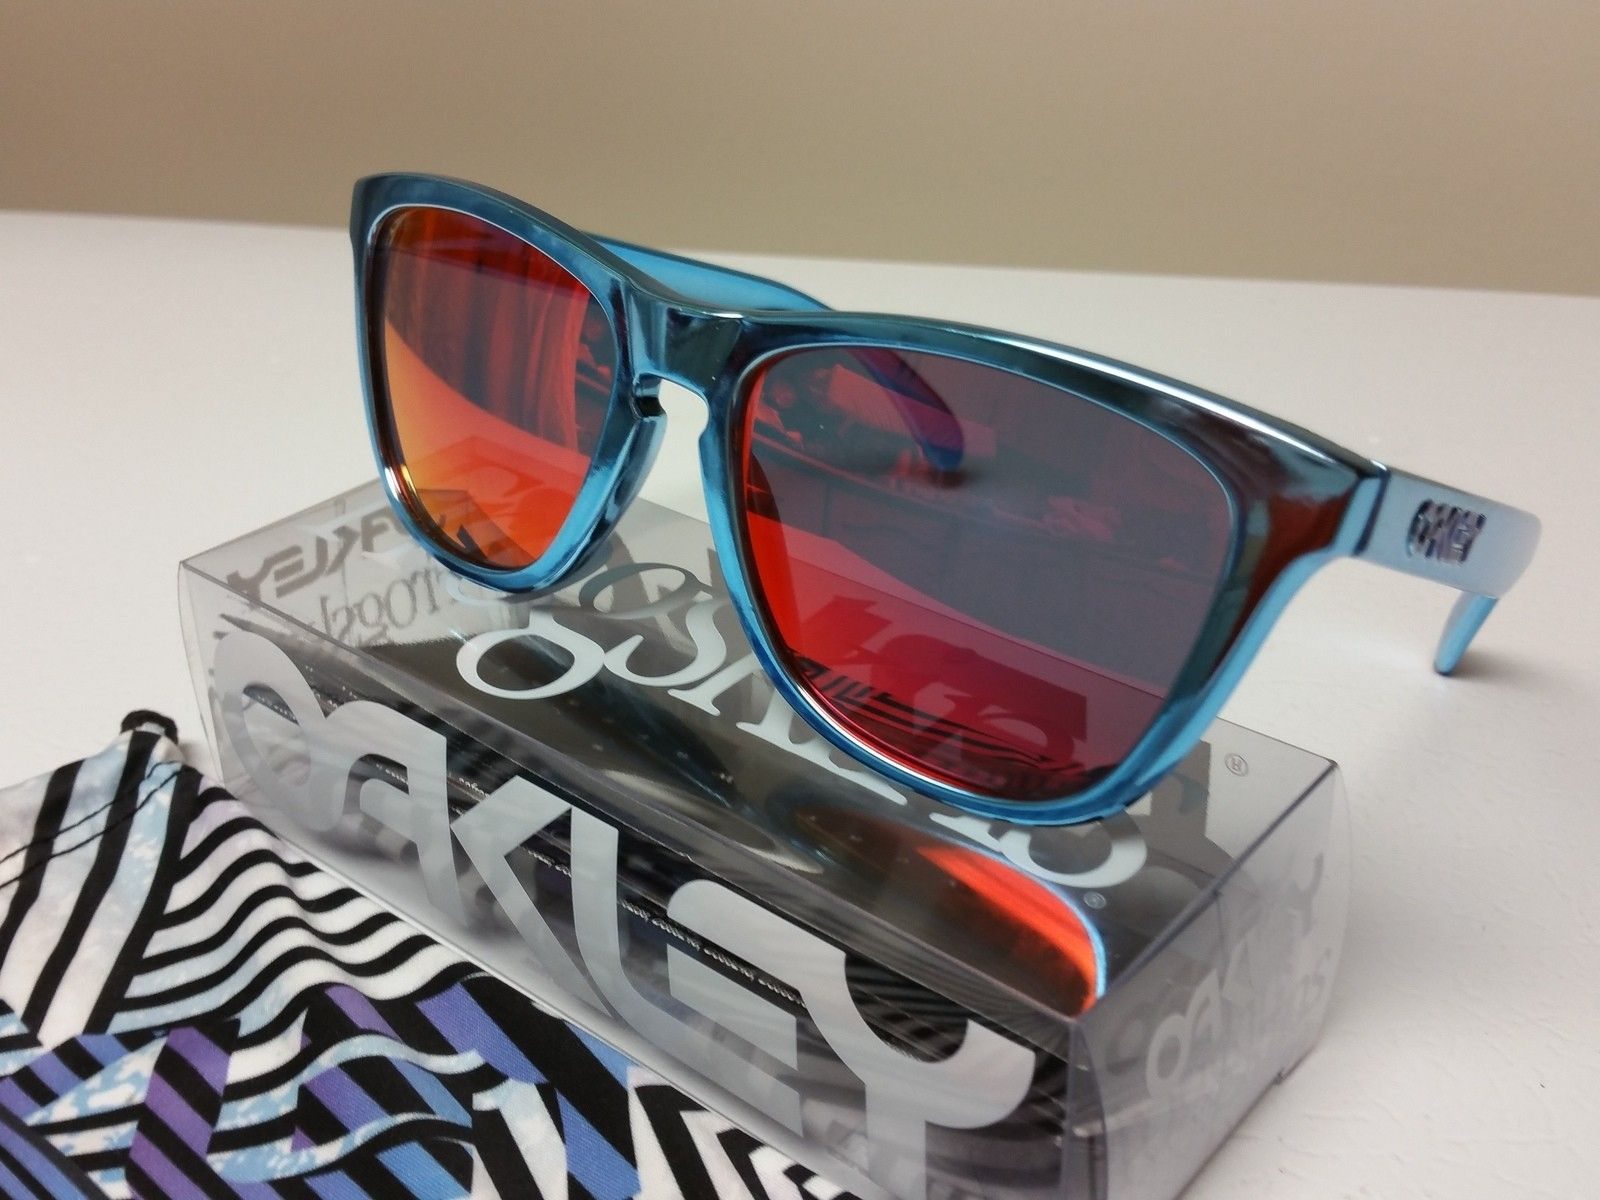 Shaun white blue chrome frogskins - 1449720267411-1412728511.jpg